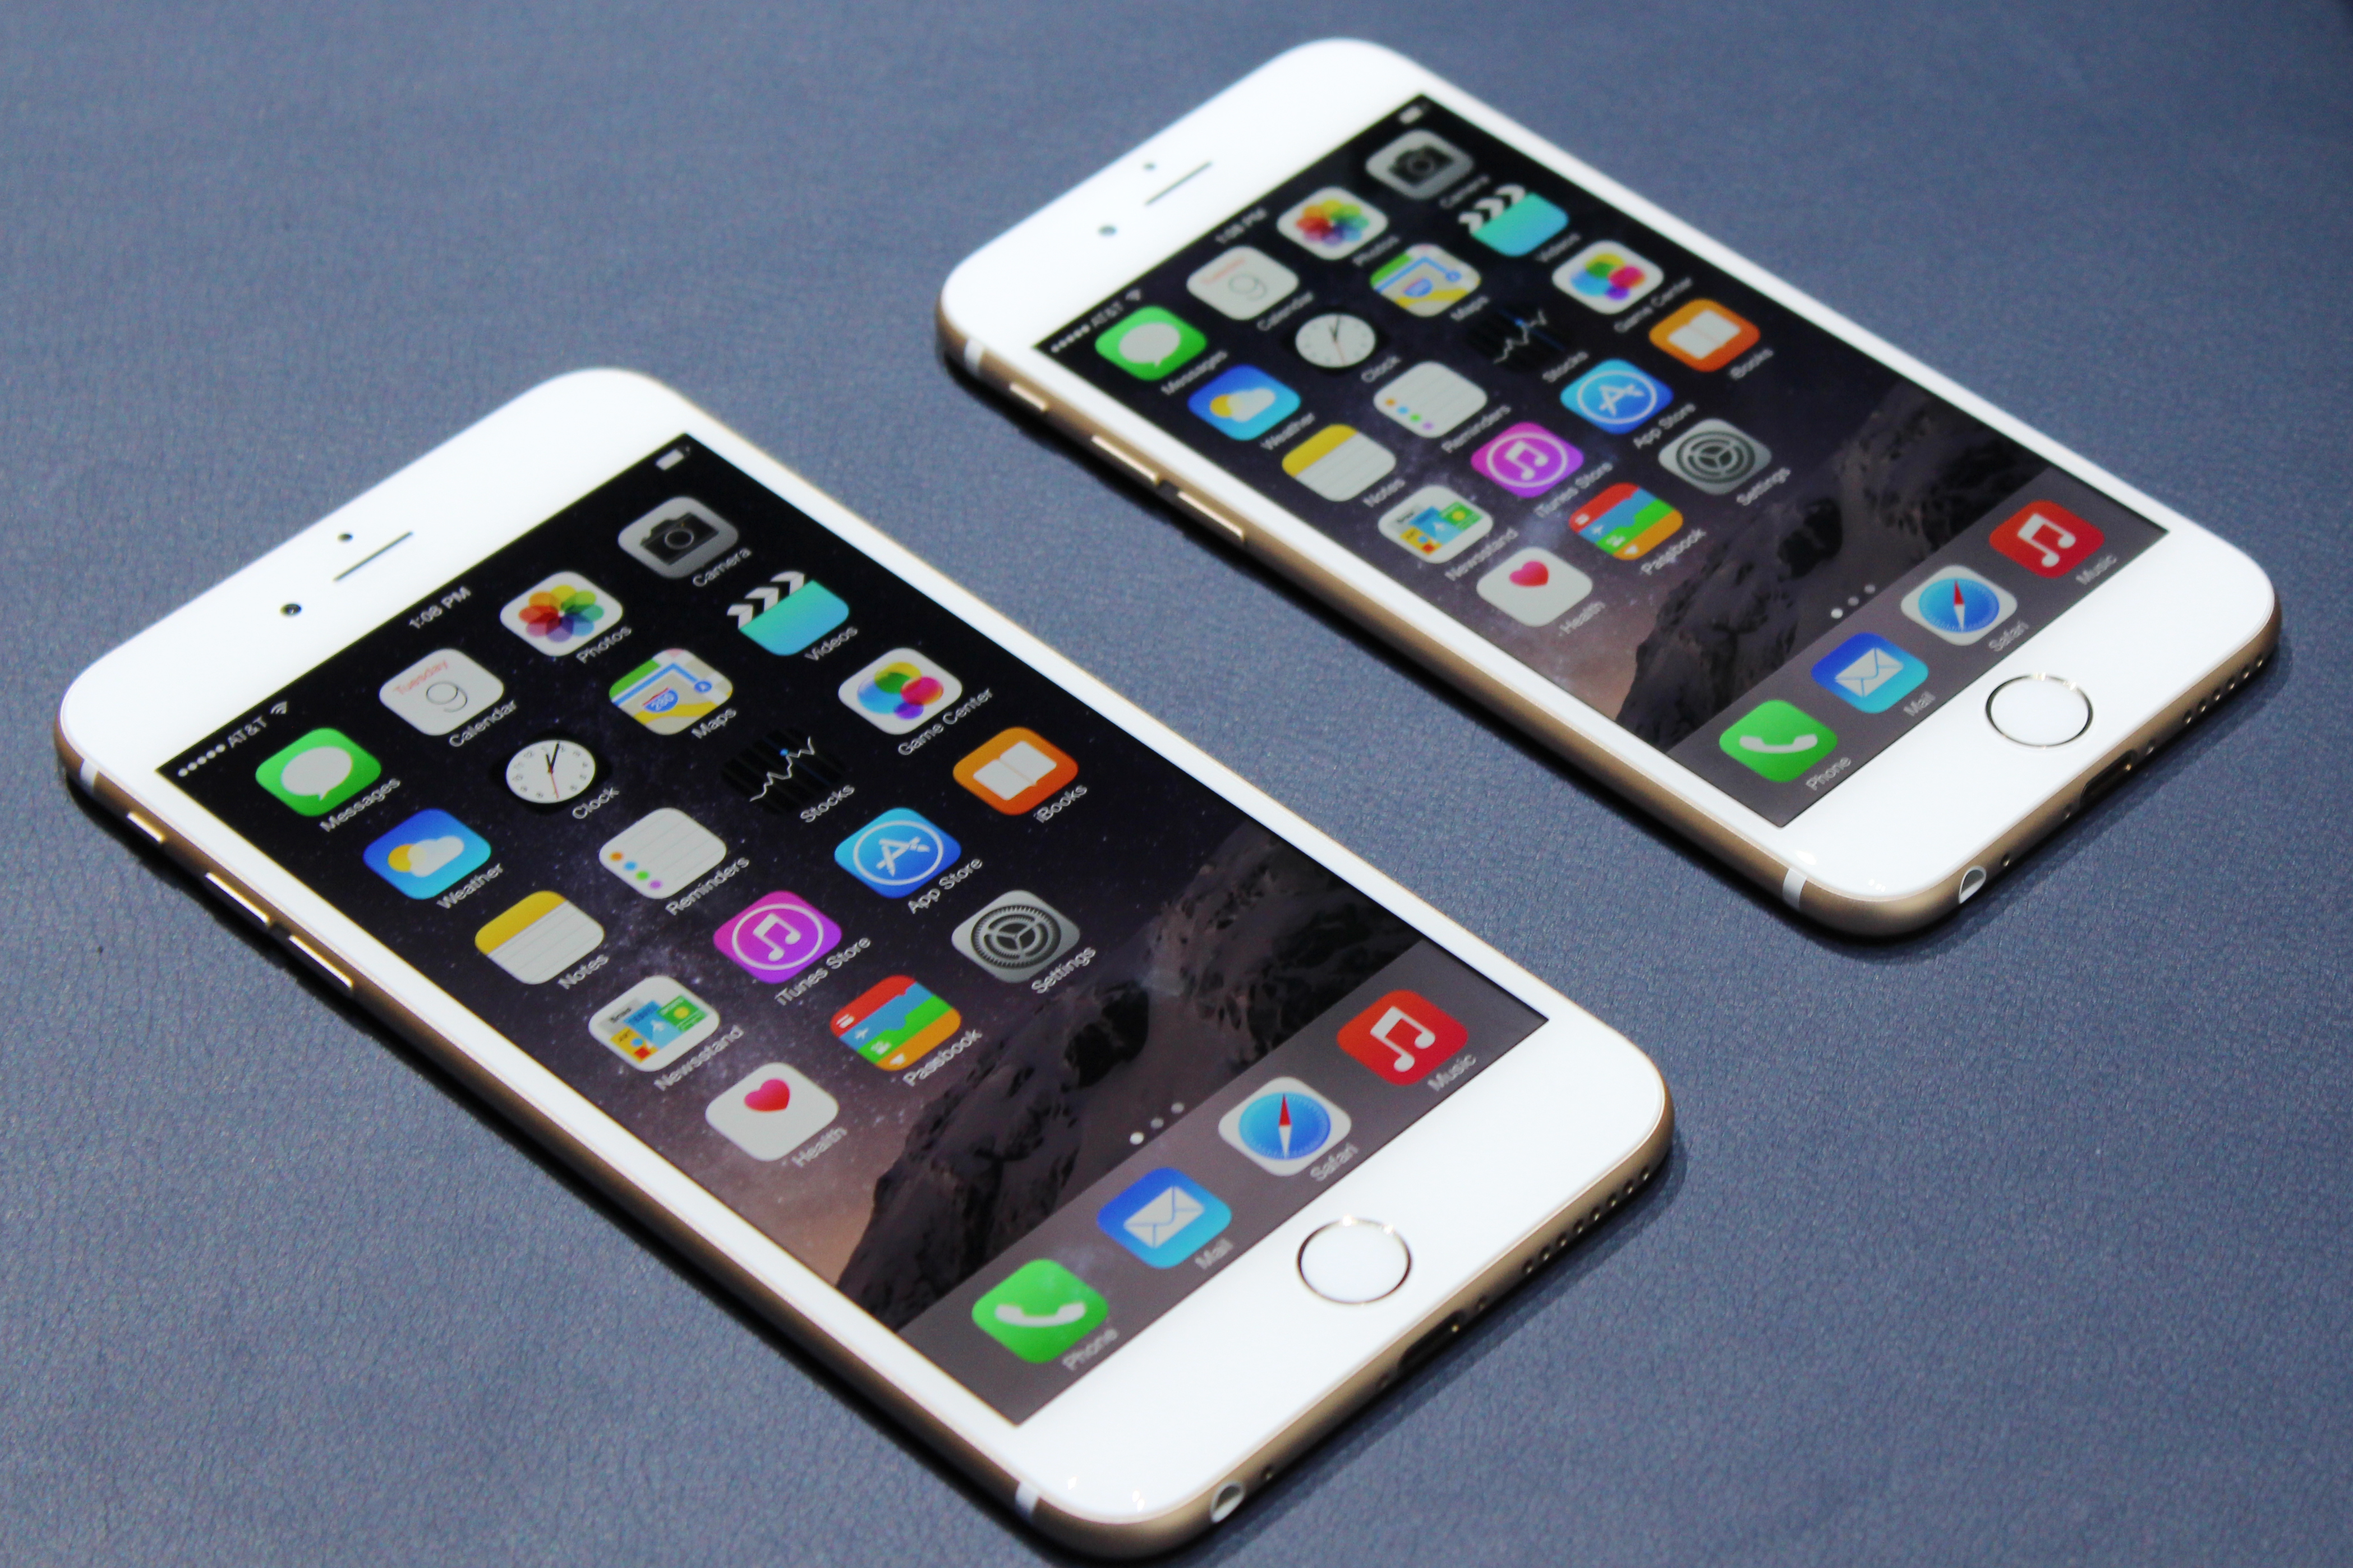 Apple said to be selling more iPhones in China than in the U.S.